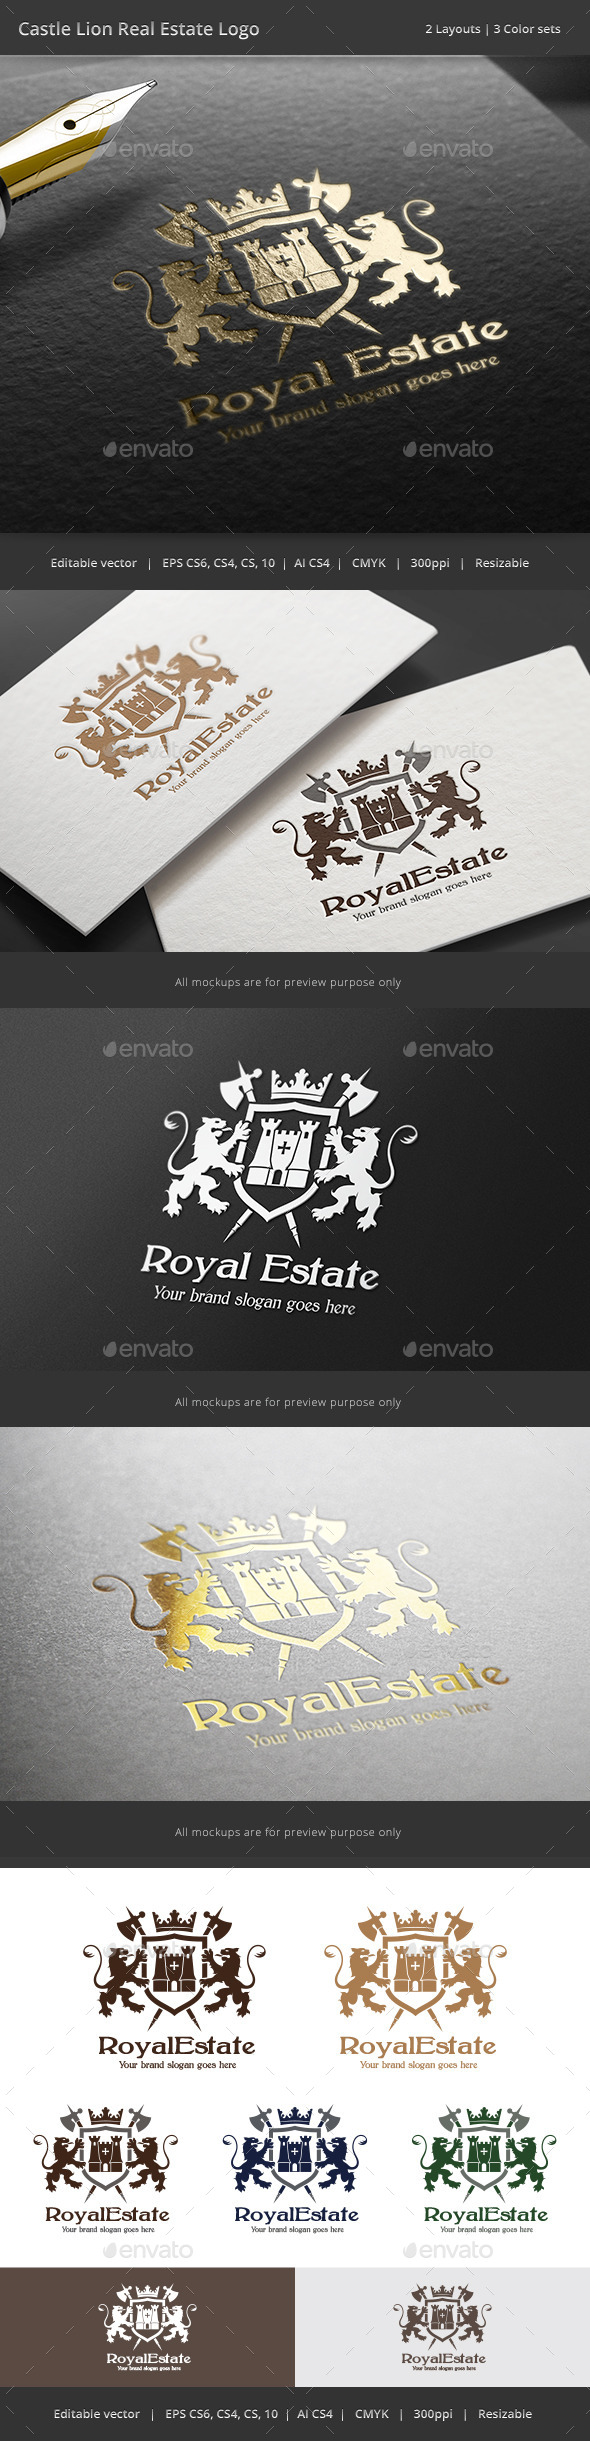 Castle Lion Real Estate Logo - Crests Logo Templates